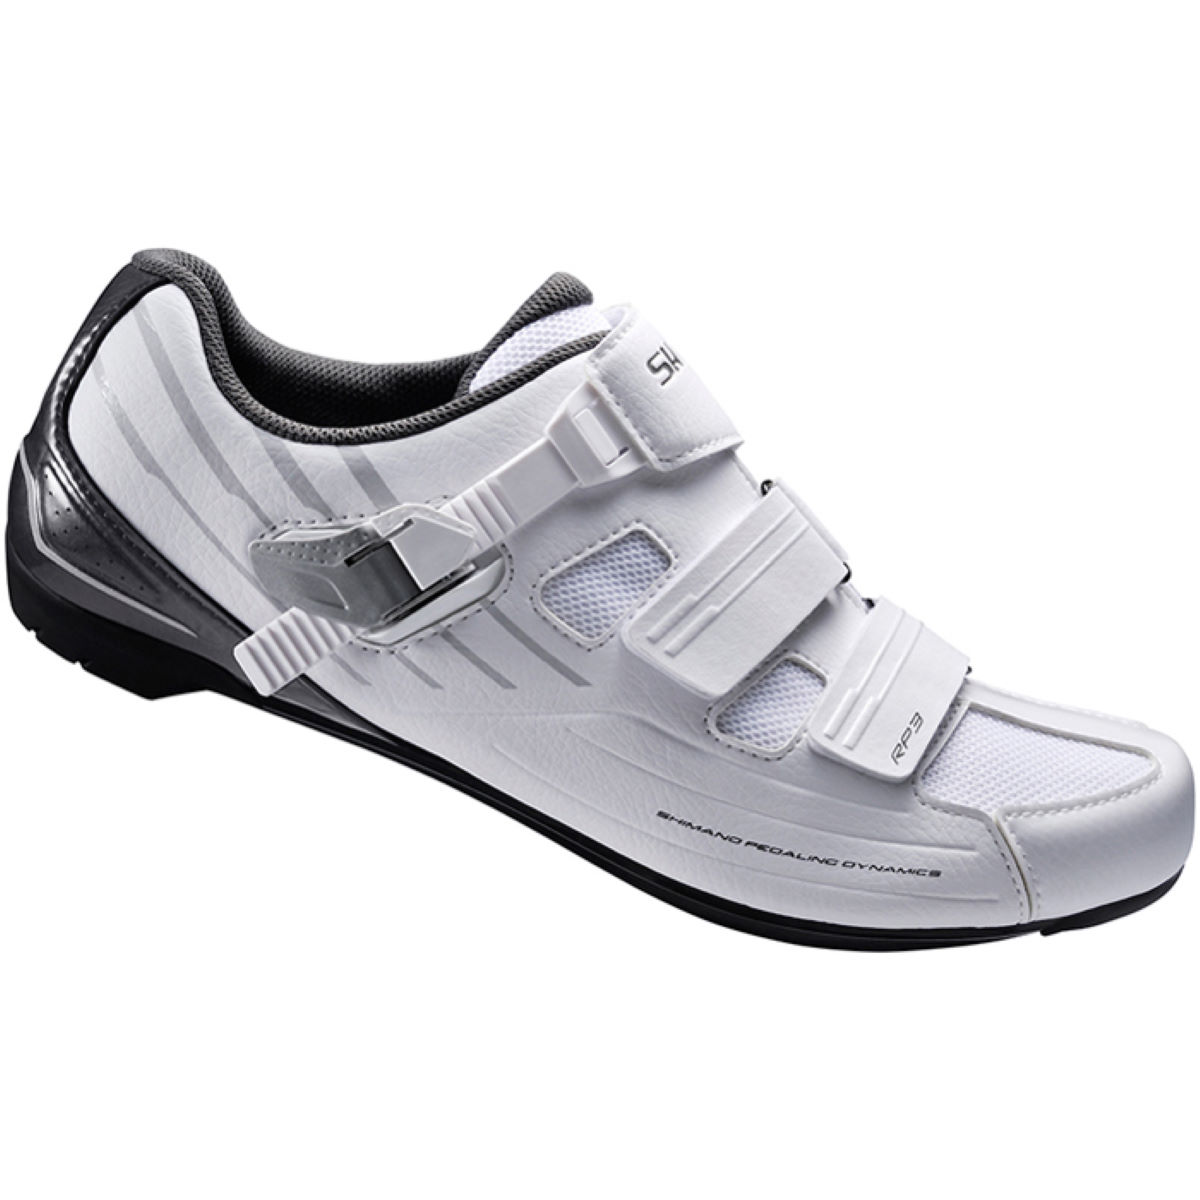 wiggle shimano rp5 spd sl road shoes road shoes